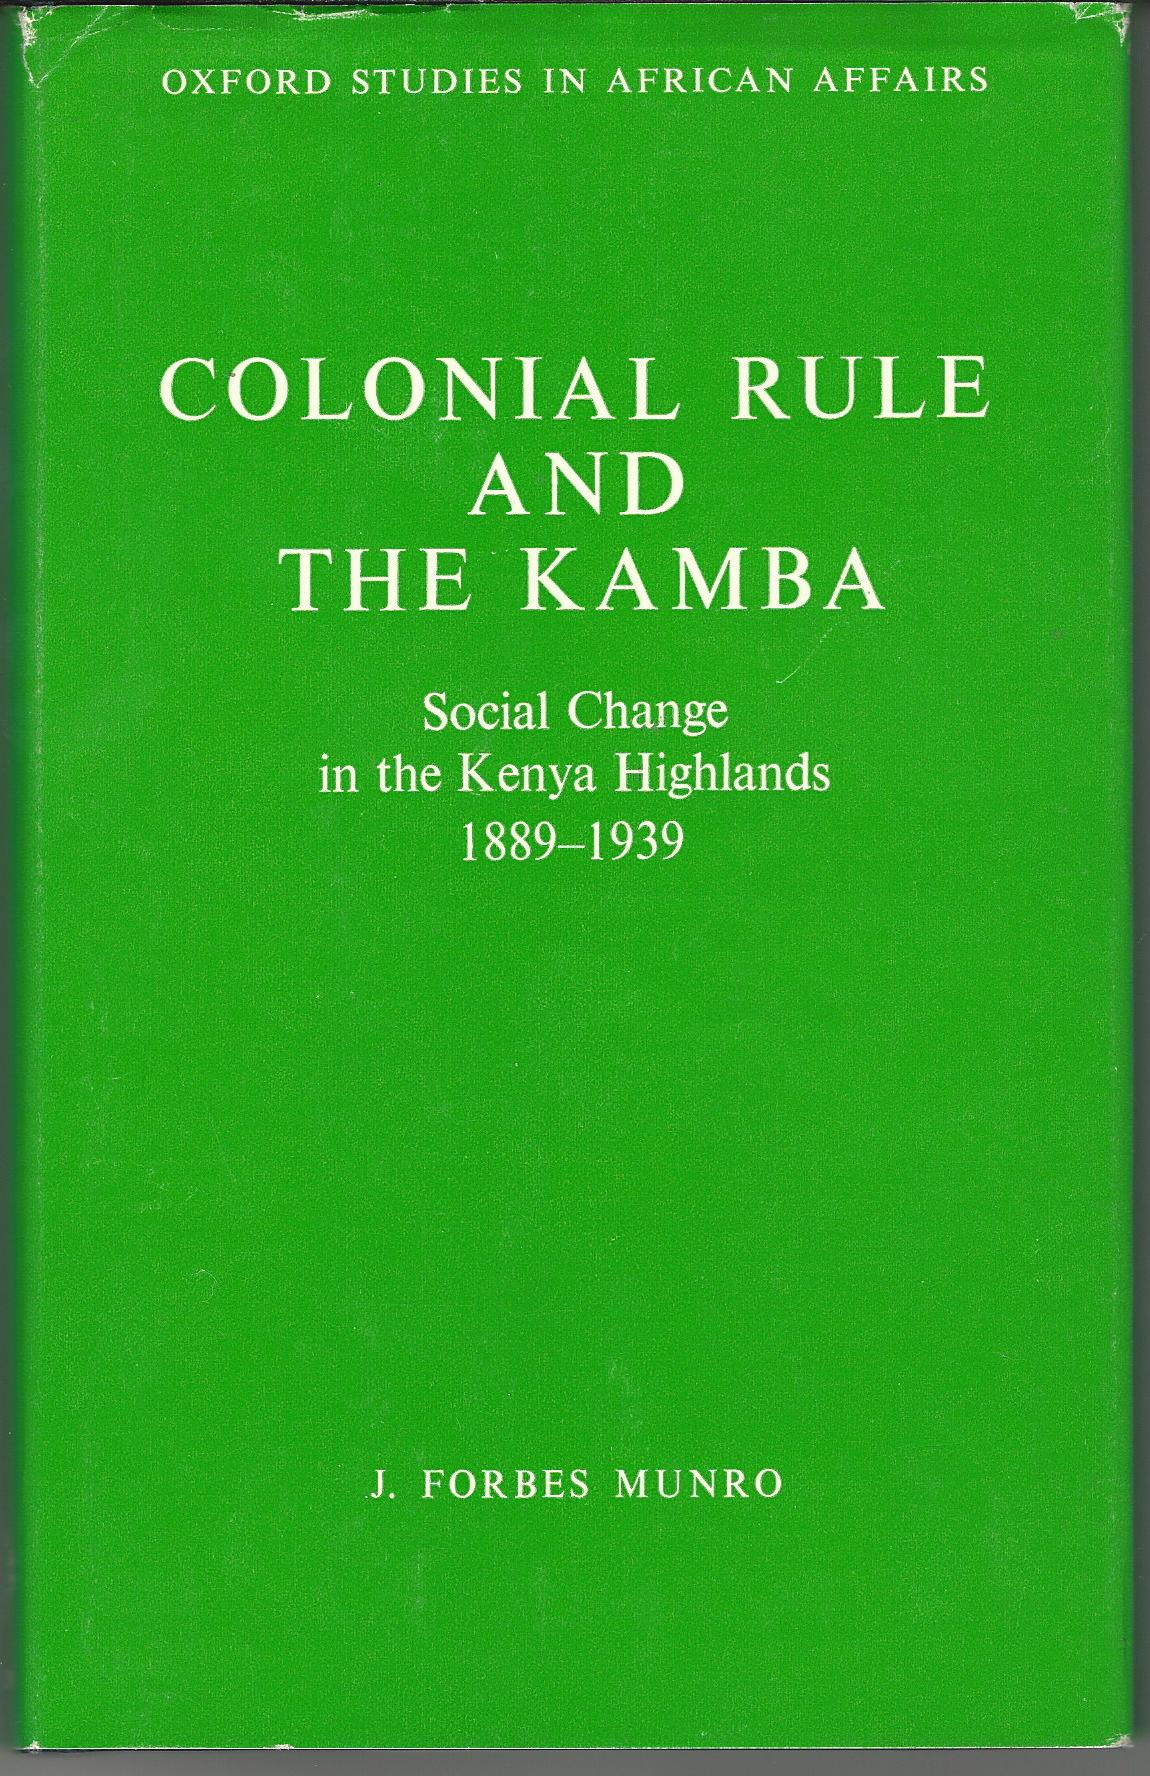 Image for Colonial Rule and the Kamba: Social Change in the Kenya Highlands, 1889-1939 (Oxford Studies in African Affairs)